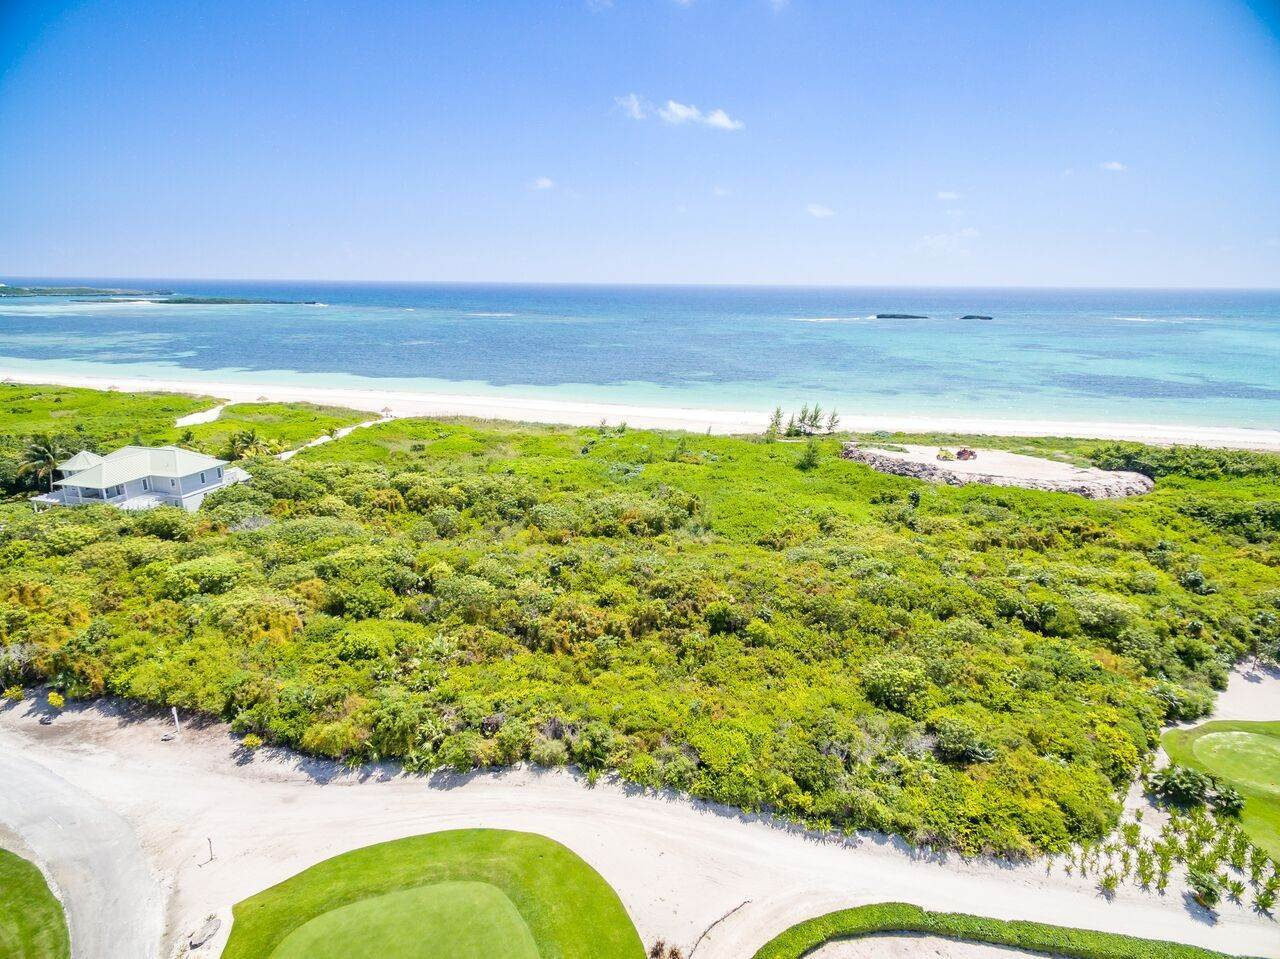 Land/Lot for Sale at Stunning Beachfront Lot - MLS 35308 Abaco, Bahamas